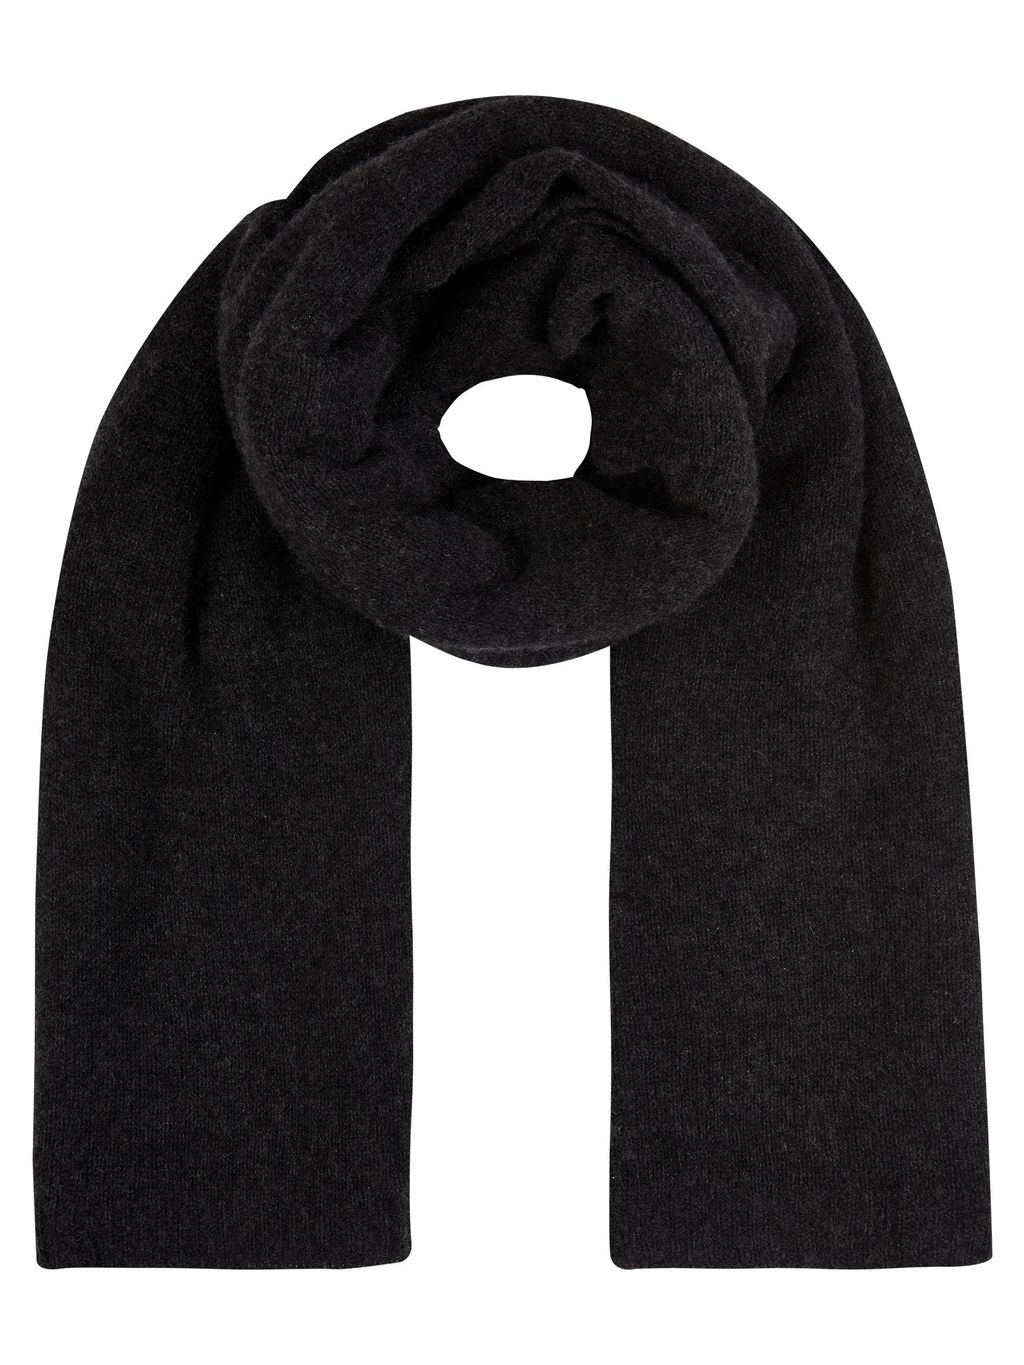 Winser Cashmere Wrap, Charcoal - predominant colour: black; occasions: casual; type of pattern: standard; style: regular; size: standard; pattern: plain; material: cashmere; season: s/s 2016; wardrobe: investment